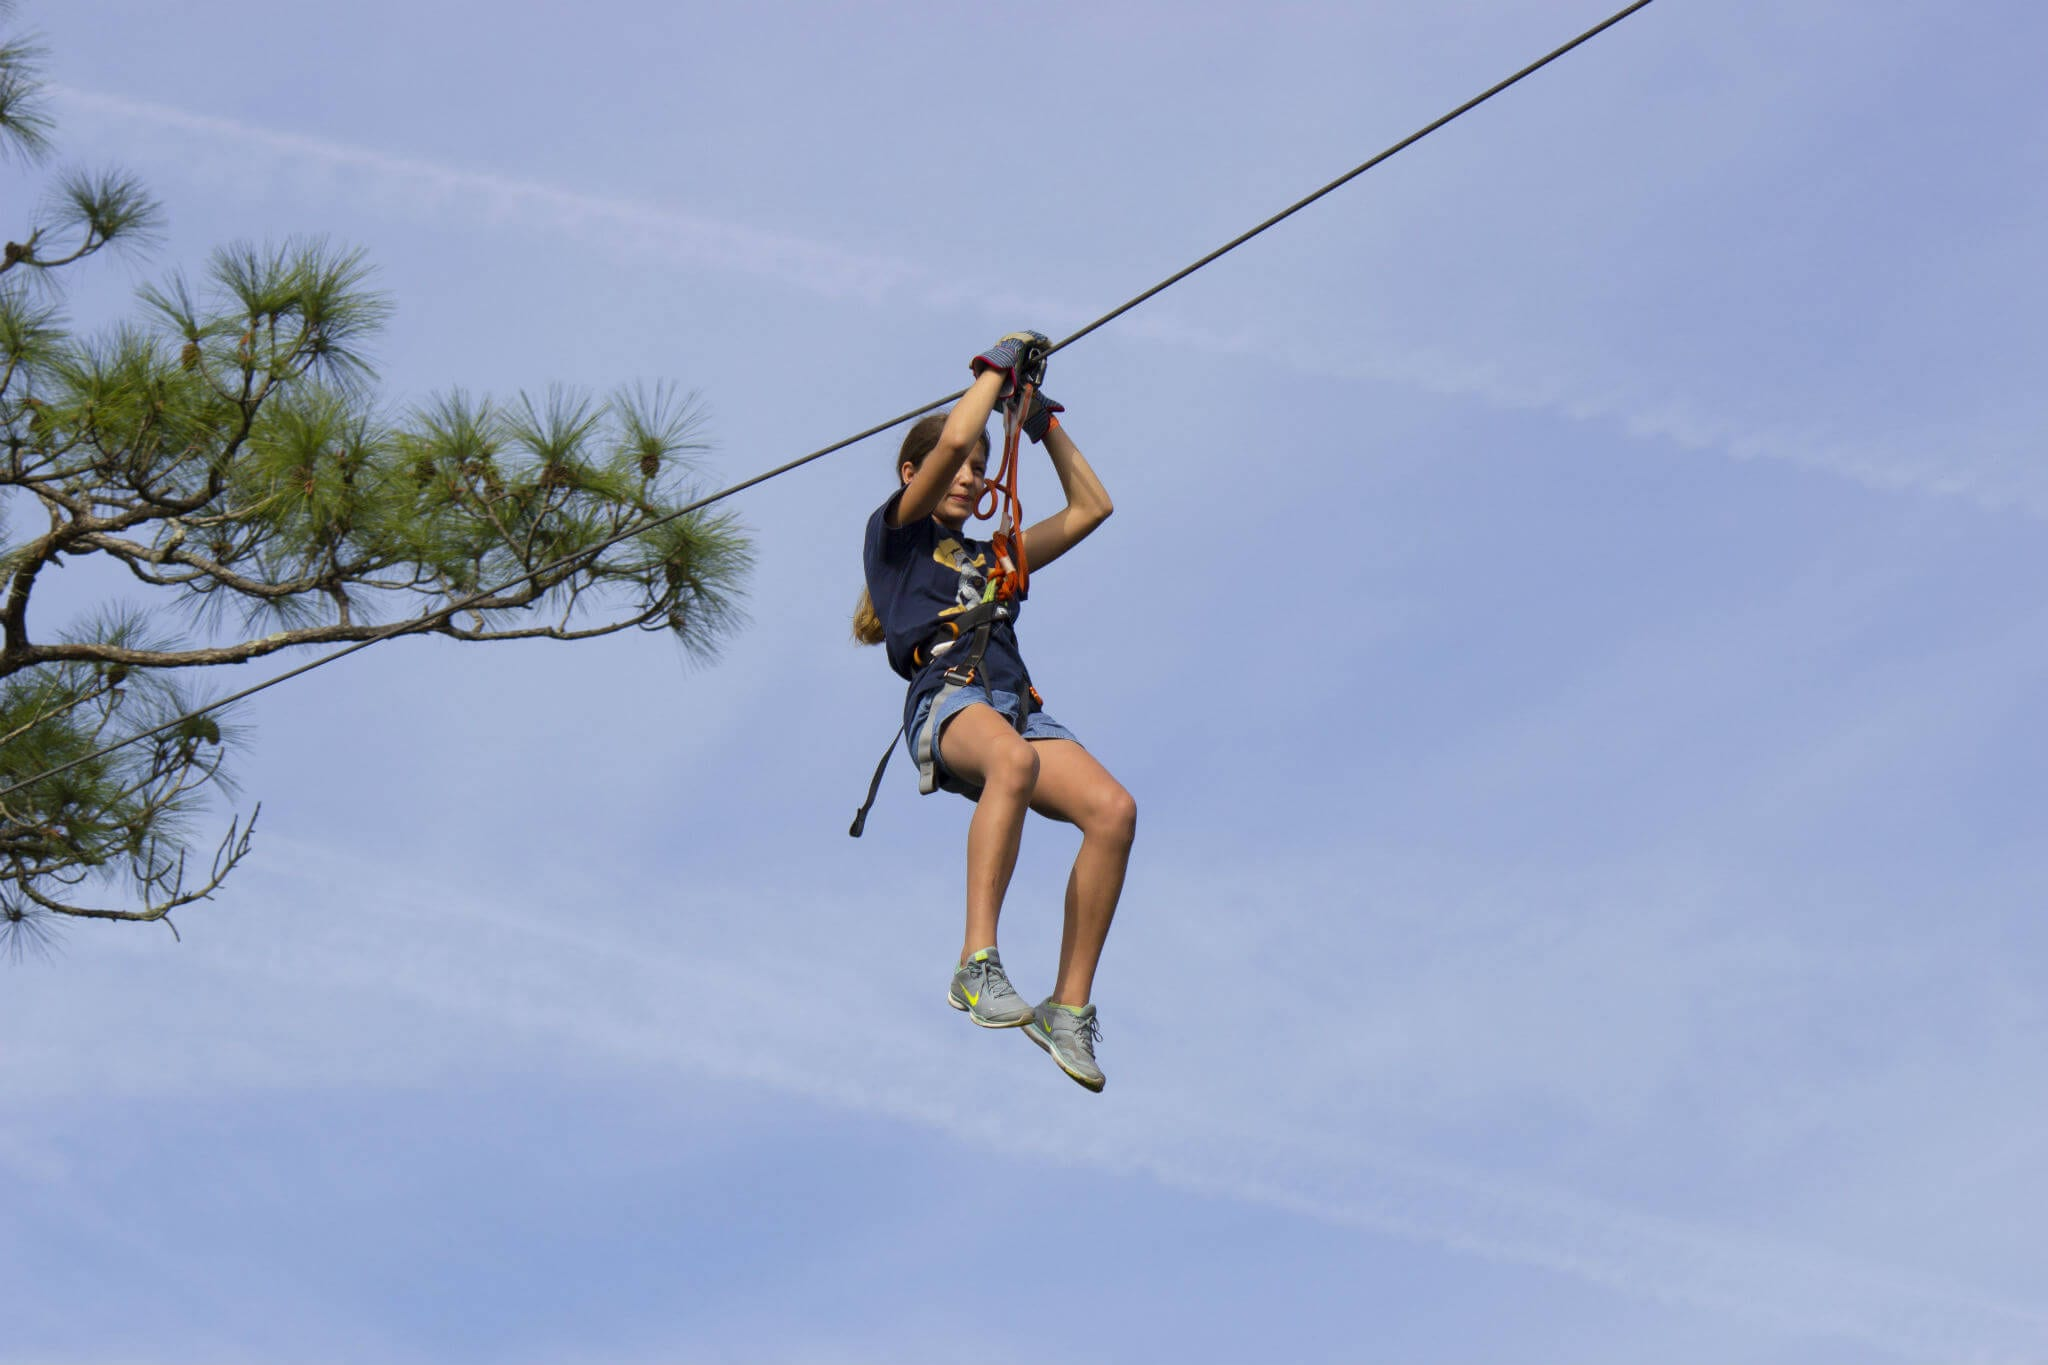 Ziplining during Extreme Nature Adventures camp